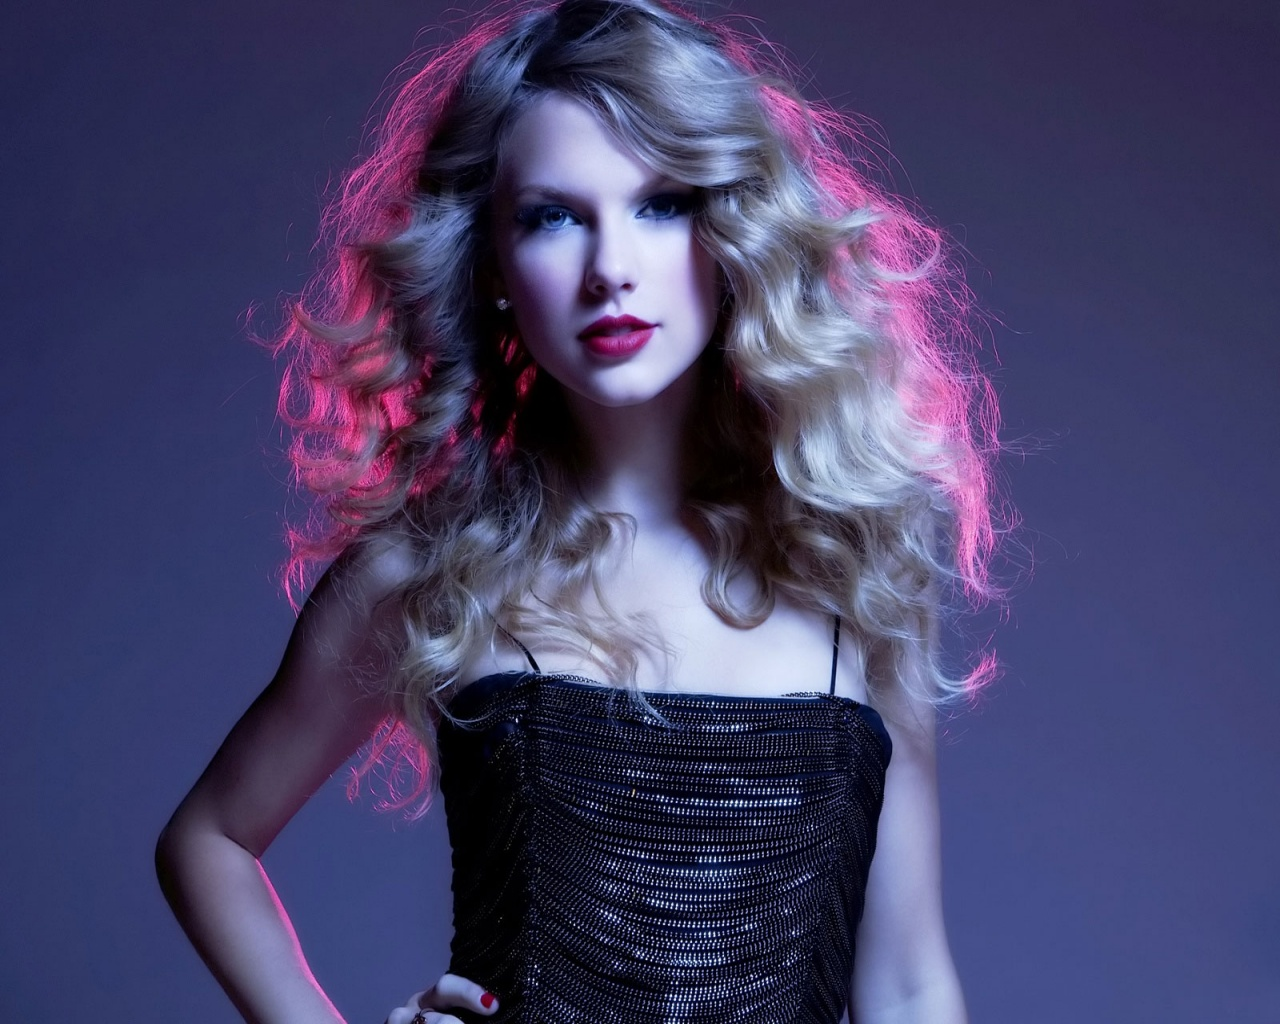 Taylor Swift Latest 2010 Wallpapers In Jpg Format For Free